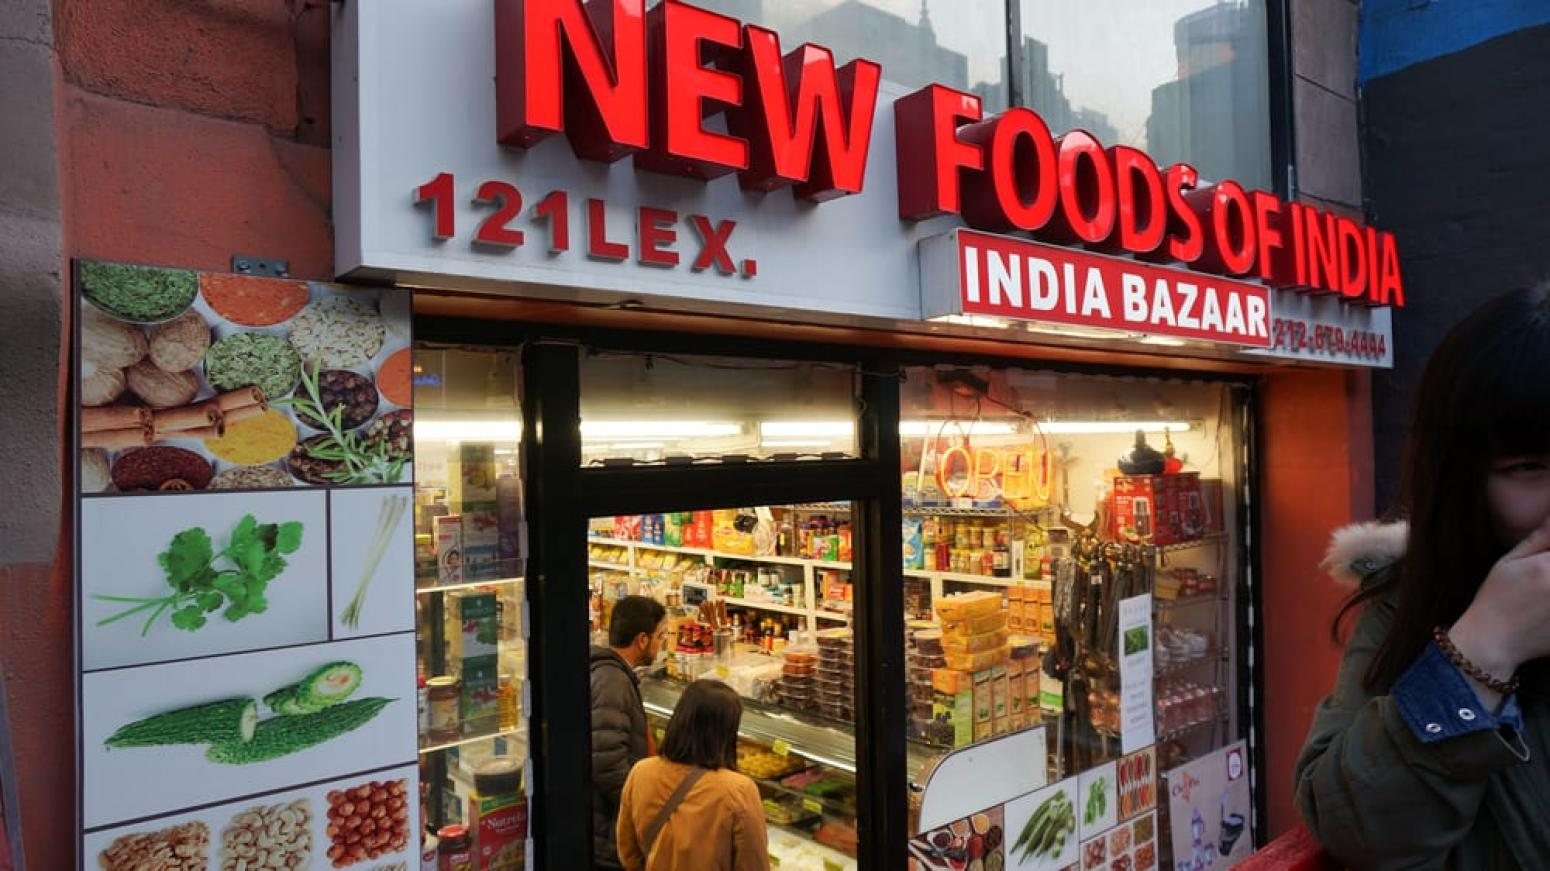 New Foods of India